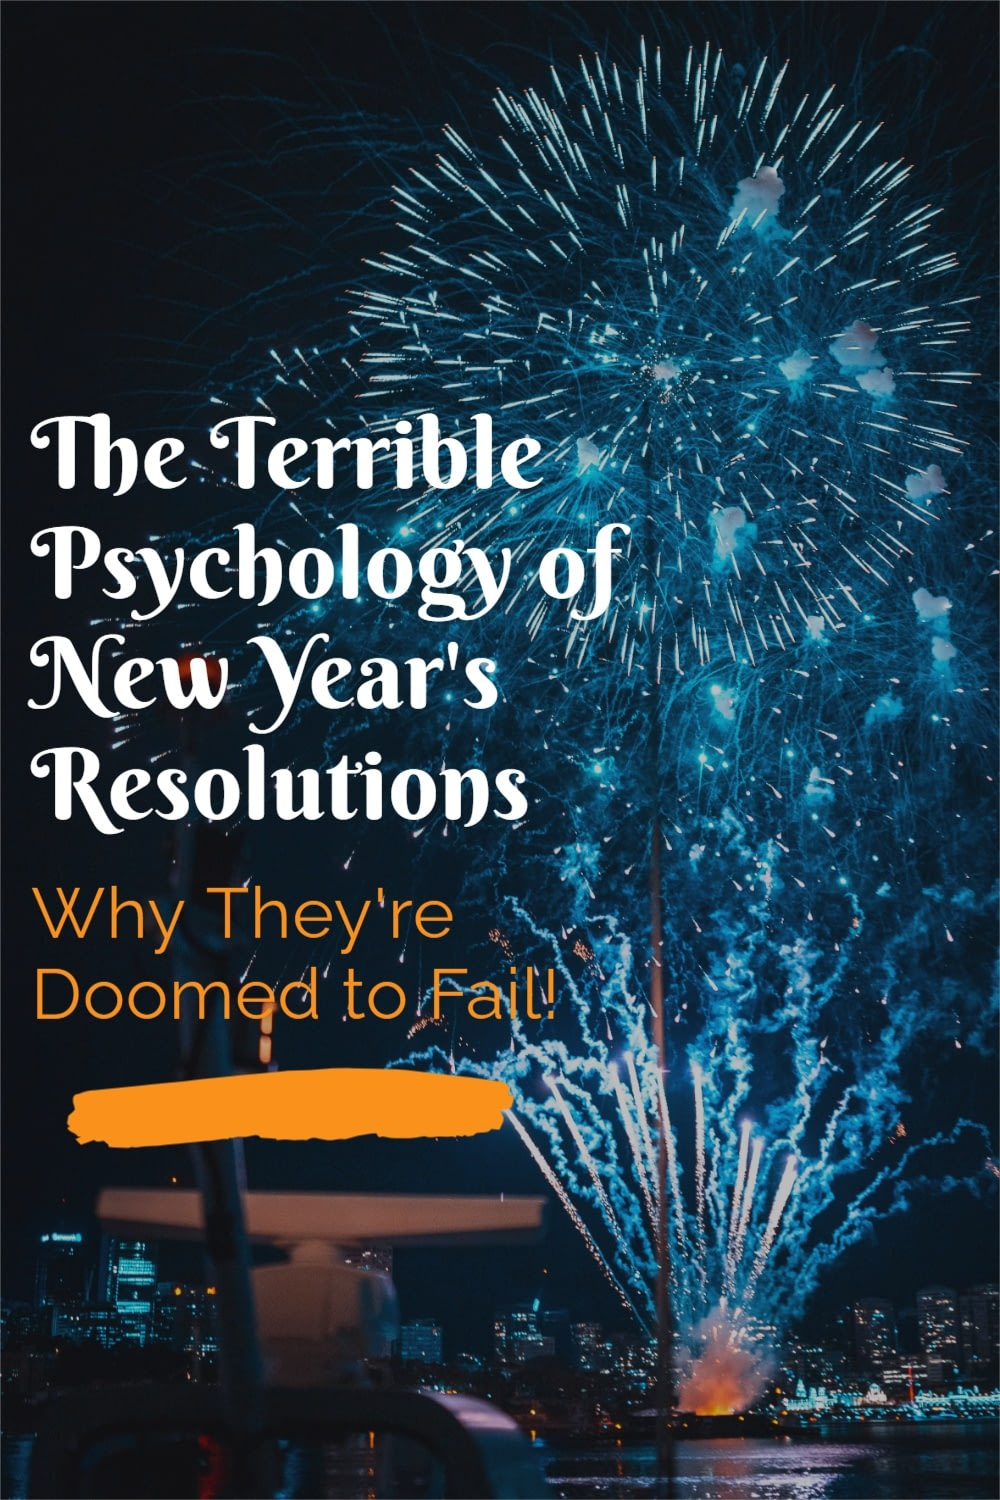 The Terrible Psychology of New Year's Resolutions